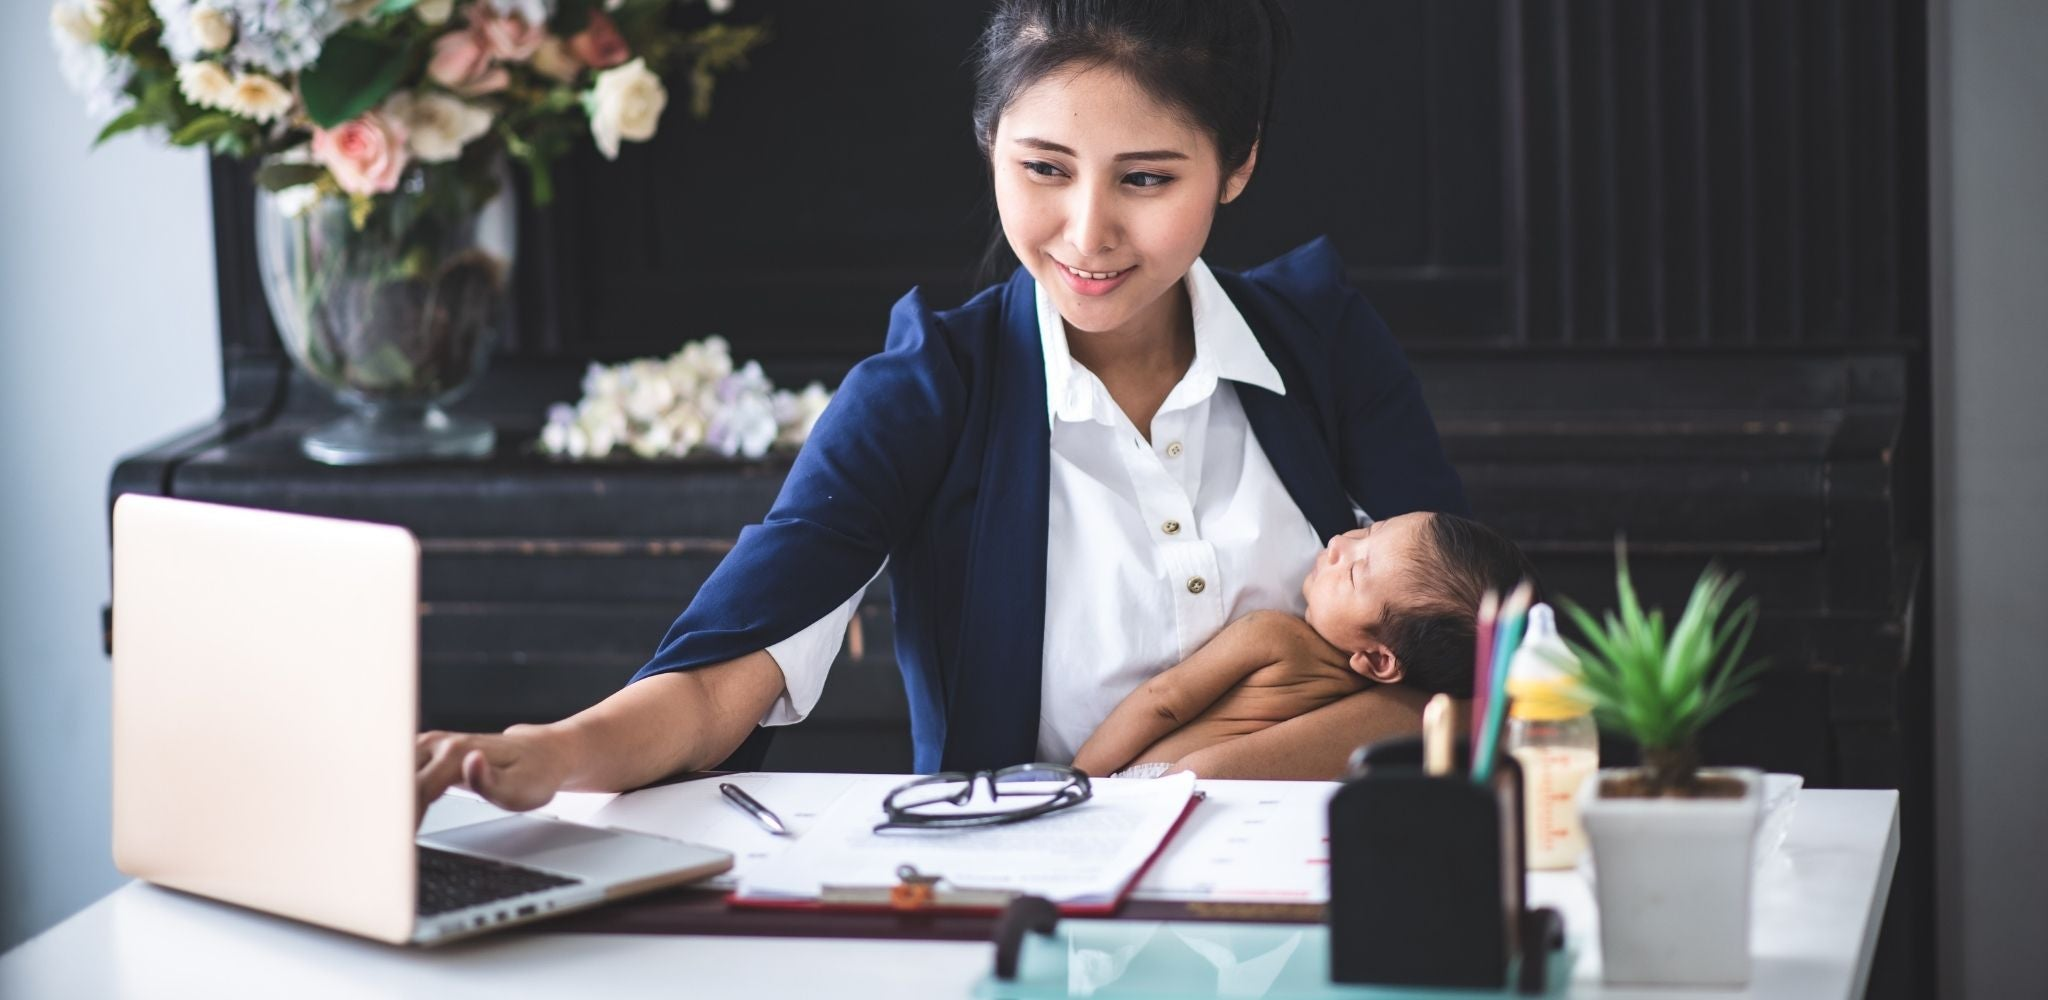 Things you should think about after baby is born to prepare for returning to work